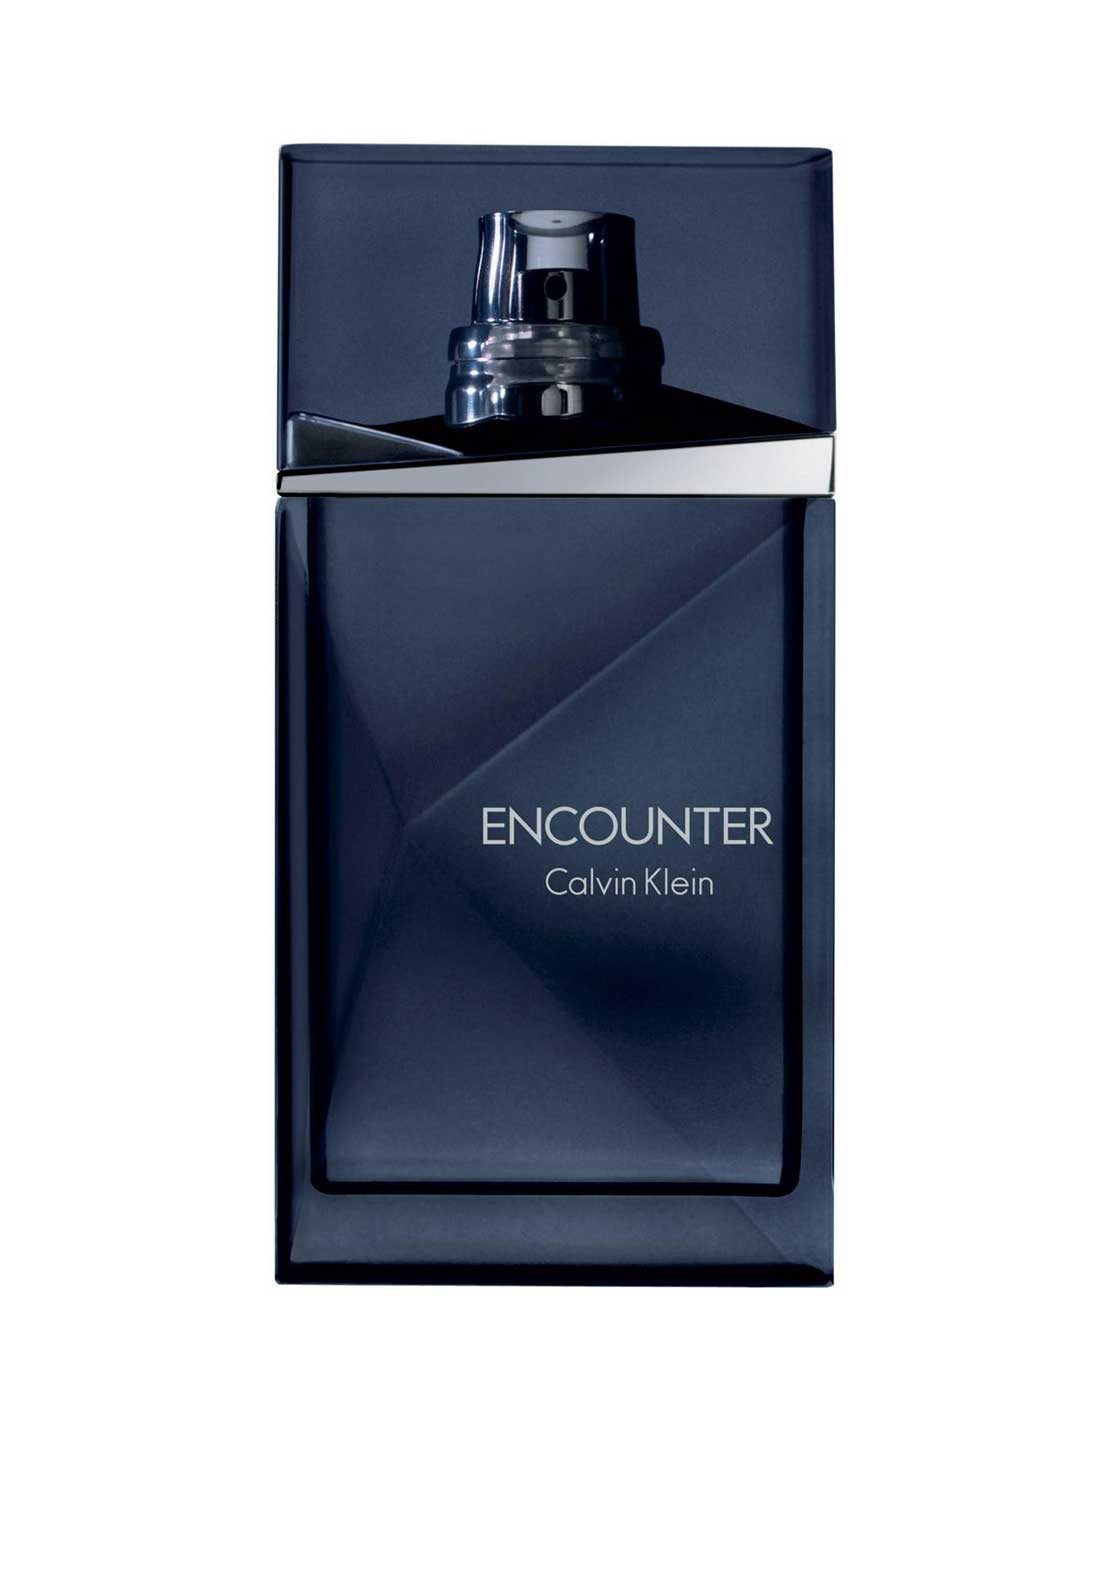 Calvin Klein Encounter Eau de Toilette Spray, 30ml